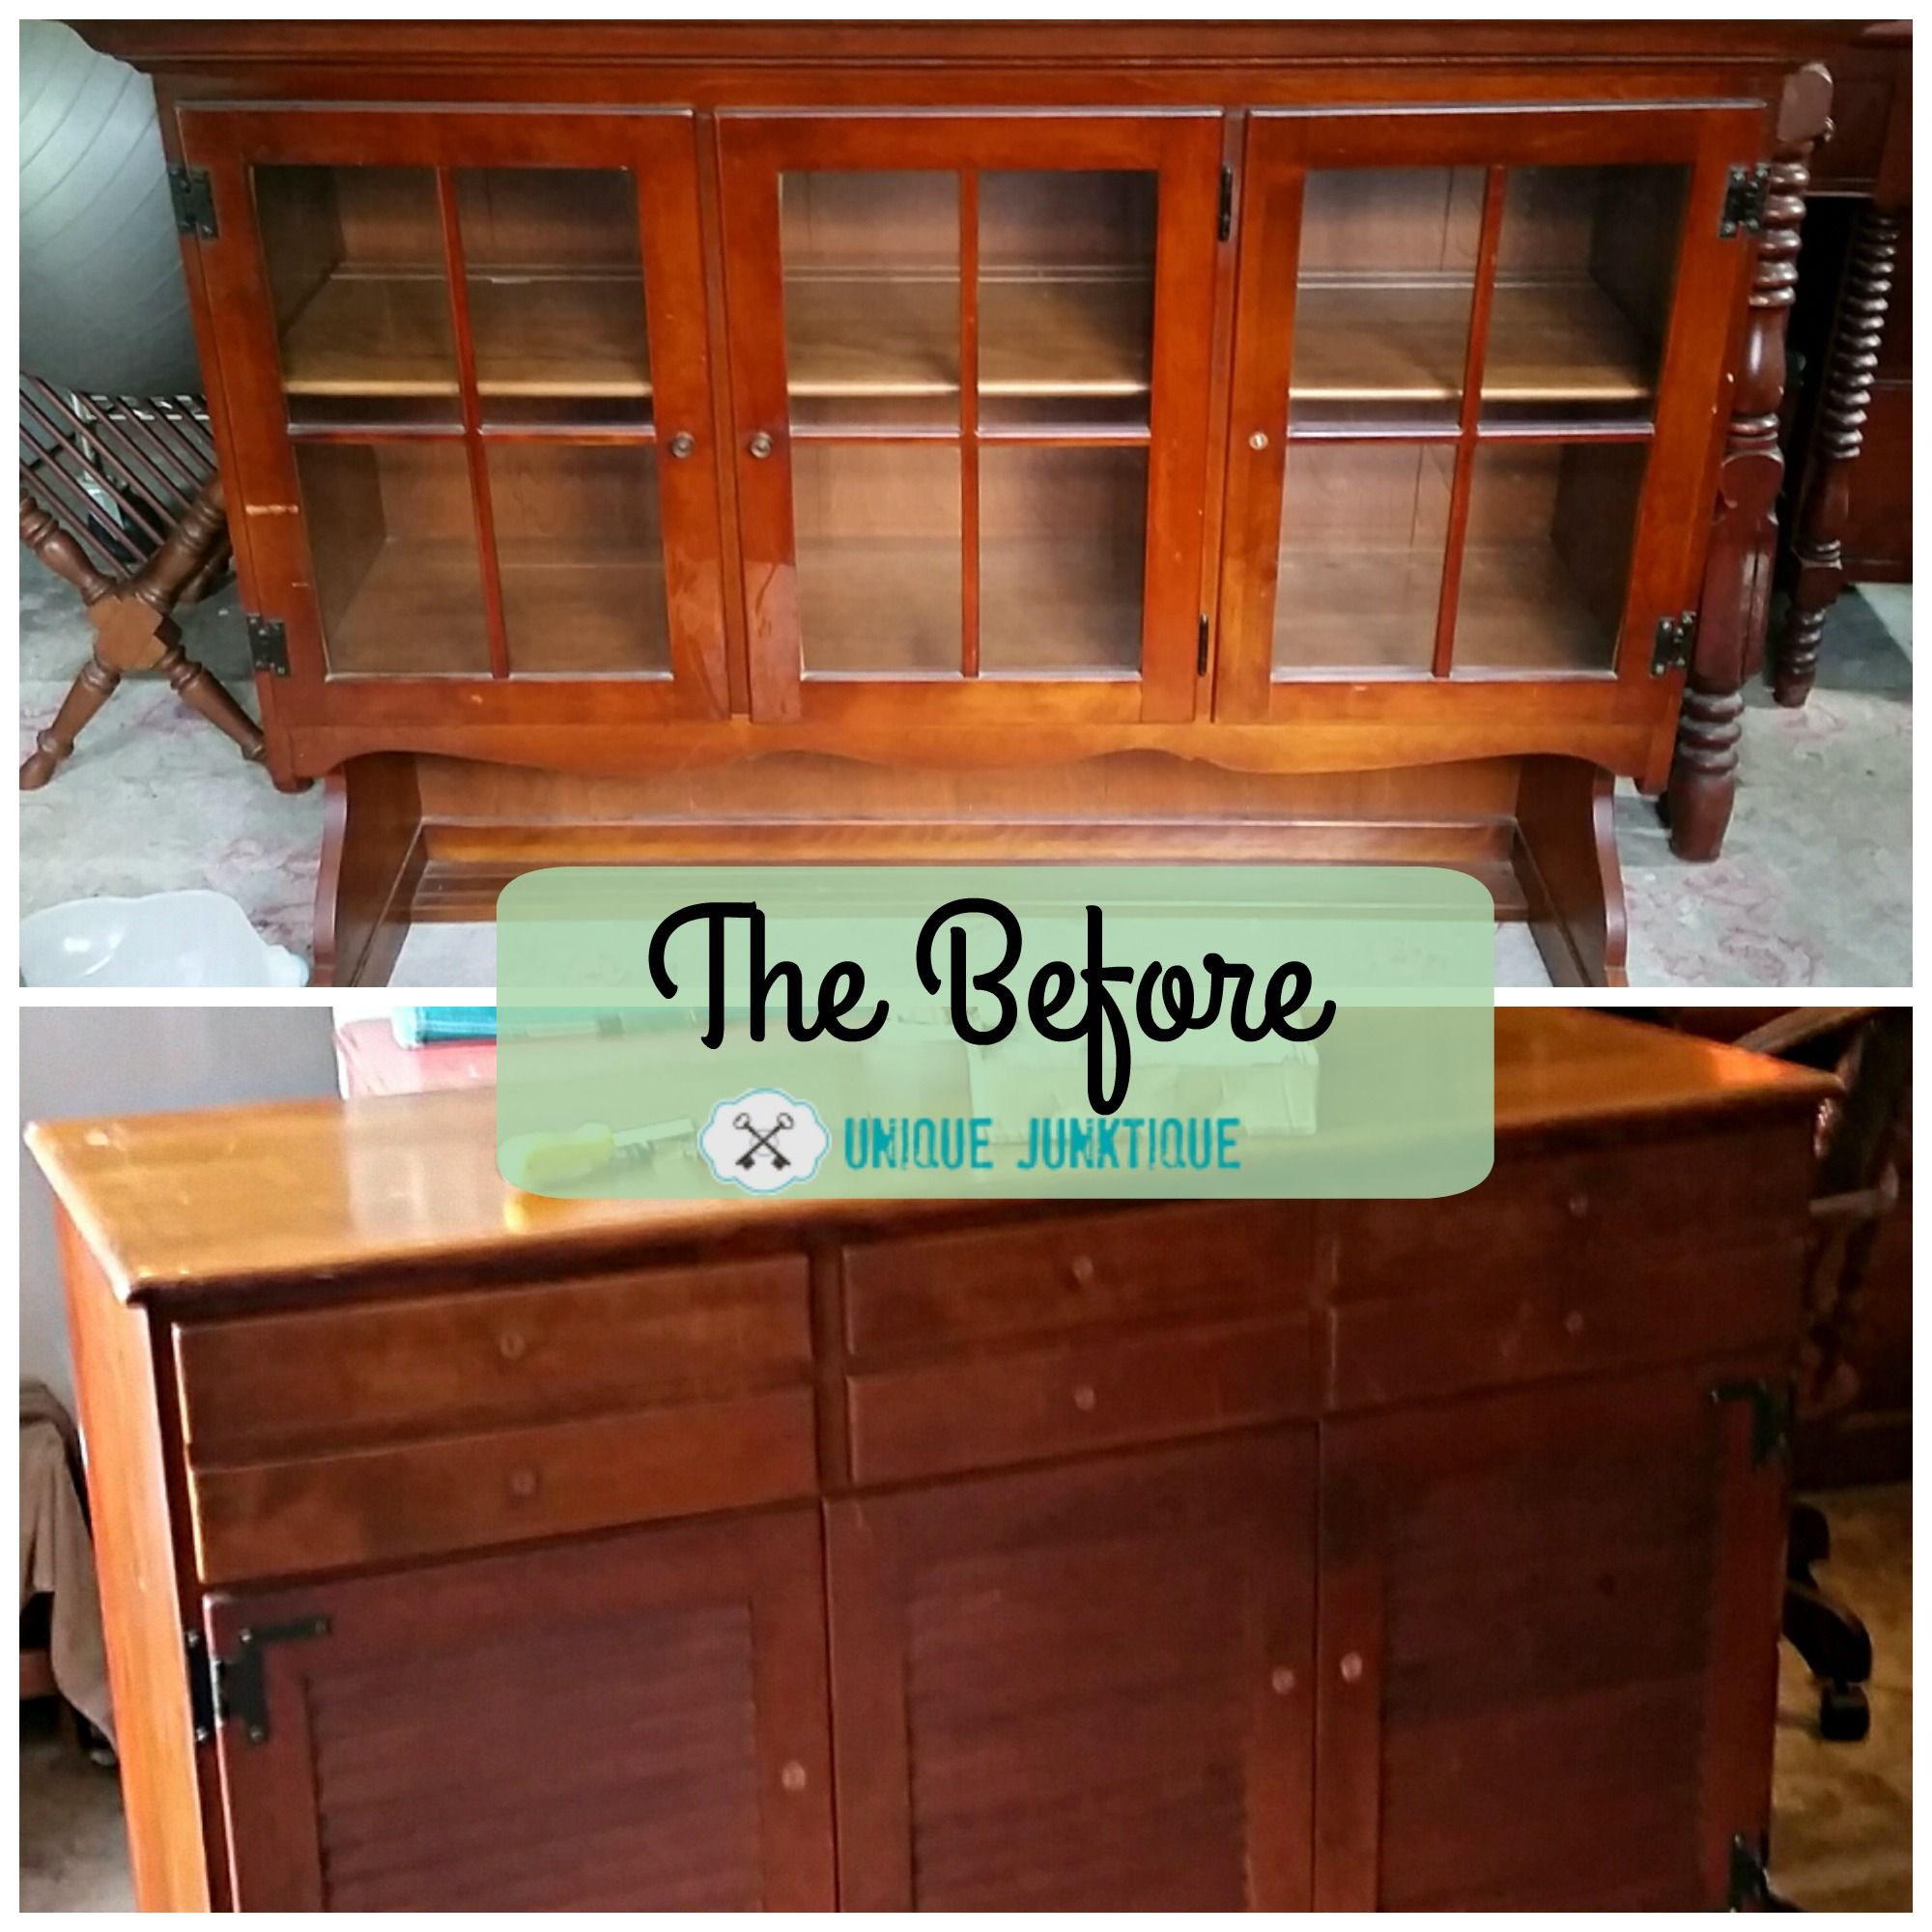 rajasweetshouston kitchen restyled brilliant in awesome of style buffet com cabinets hamptons hutch annie and vintage painted